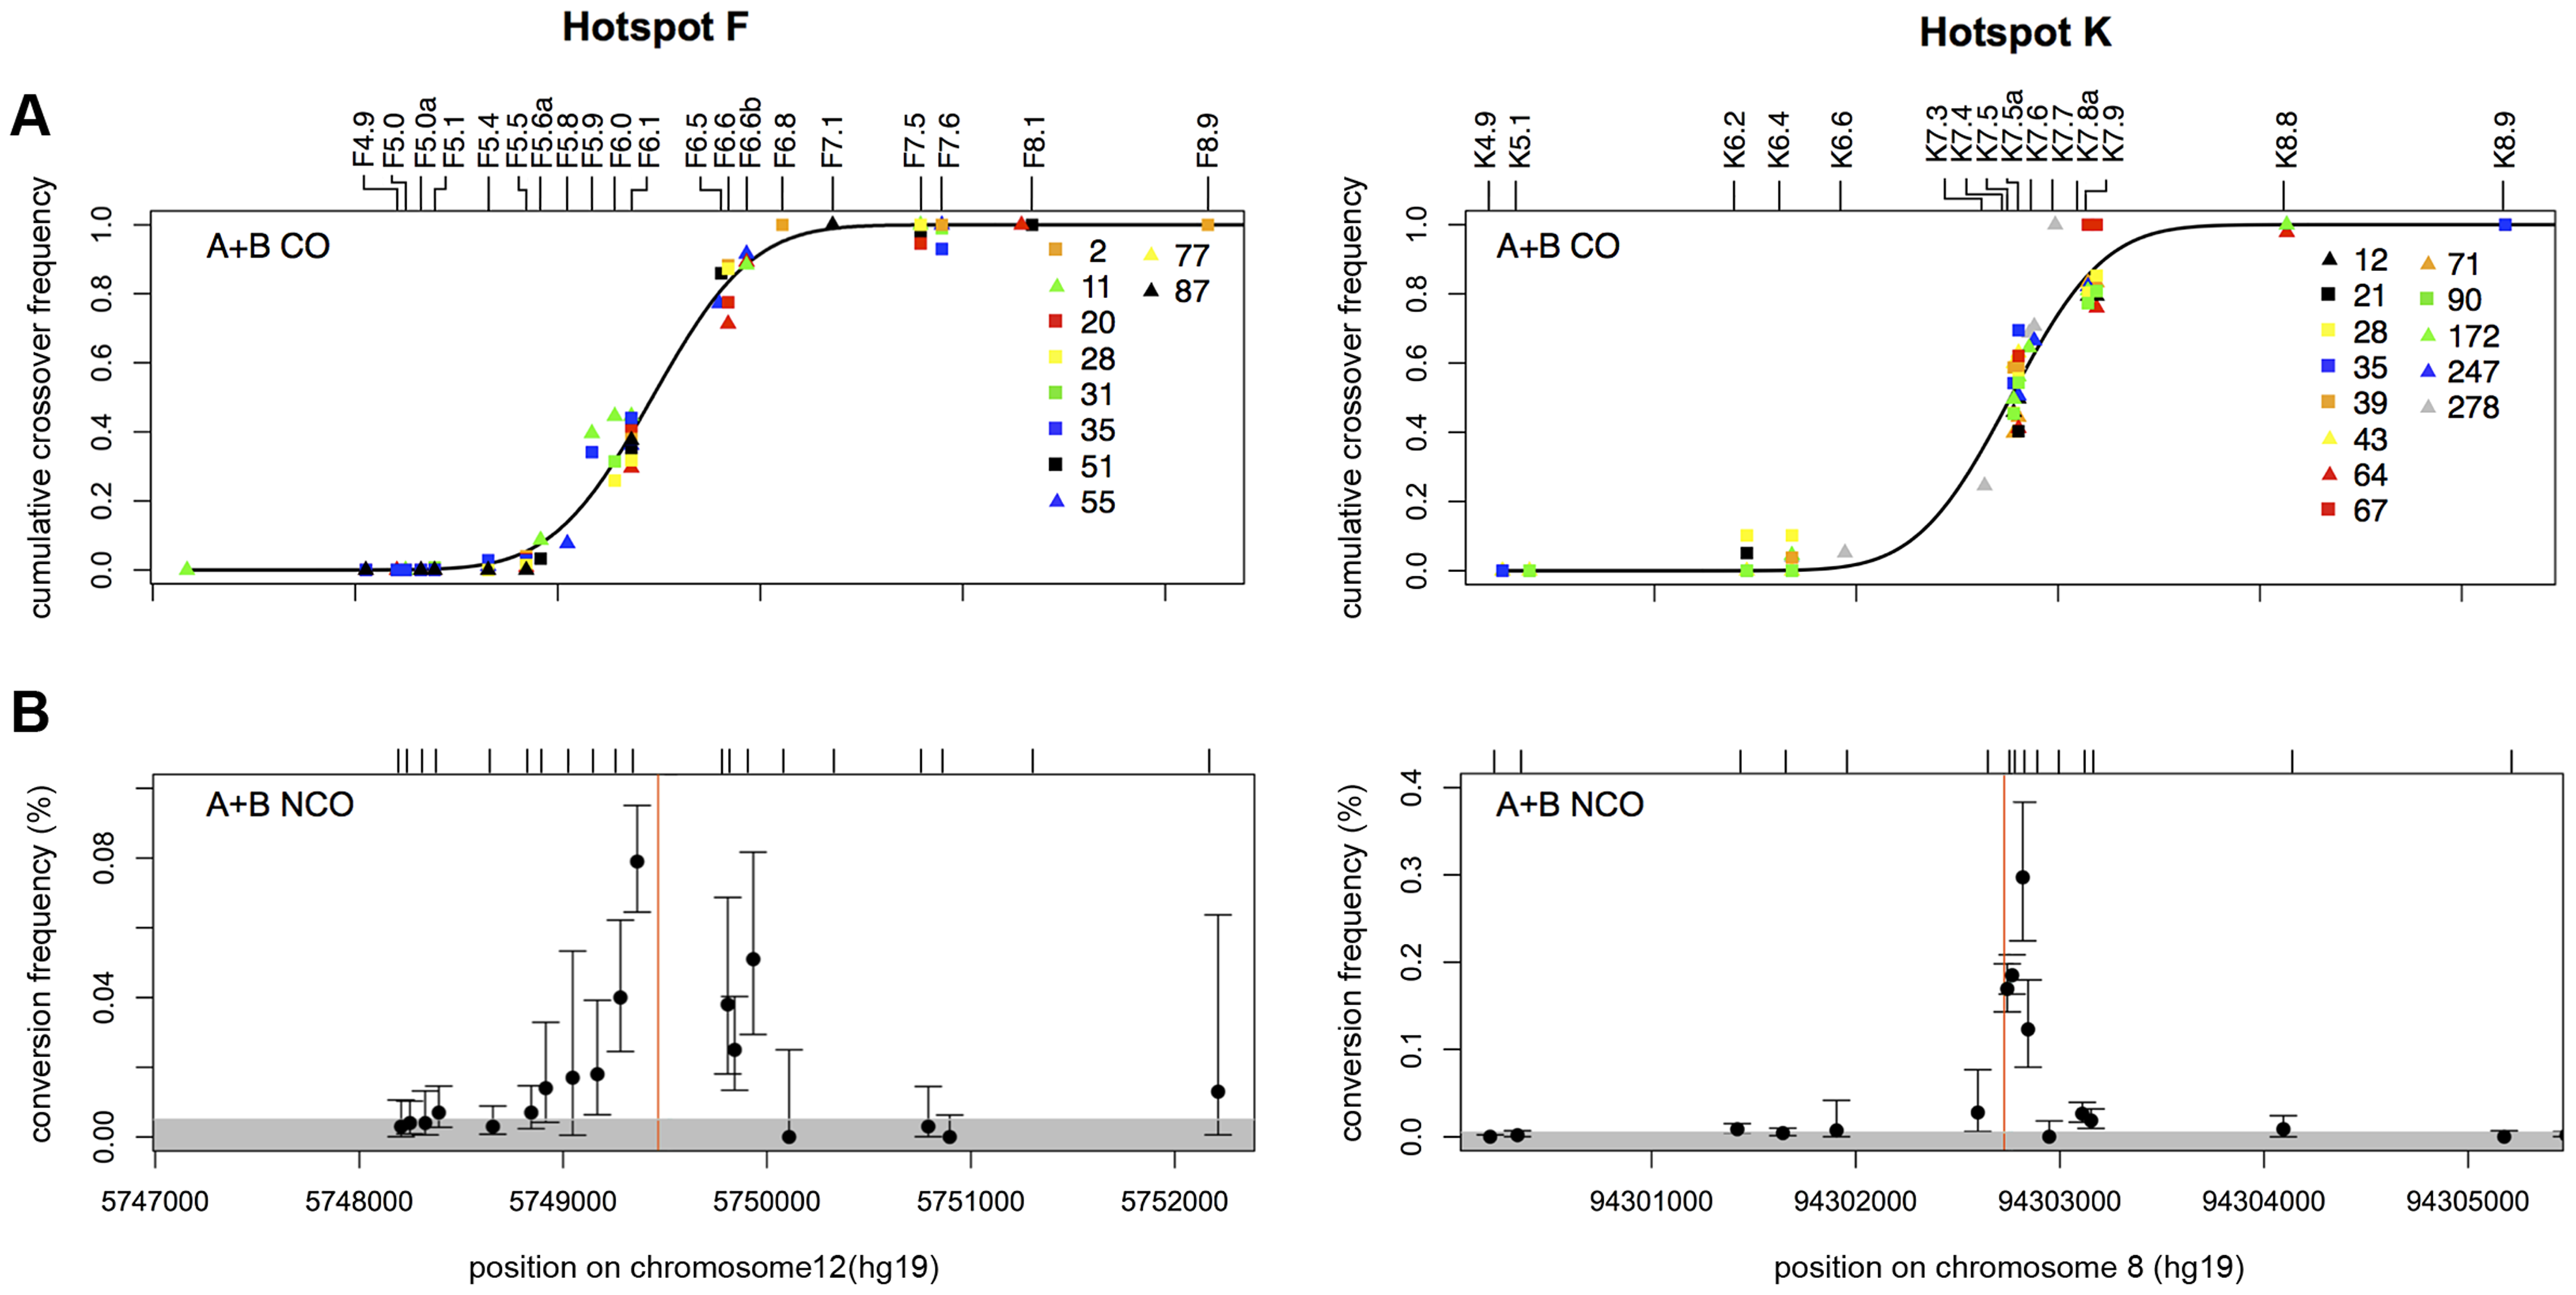 CO and NCO distributions at recombination hotspots F and K.